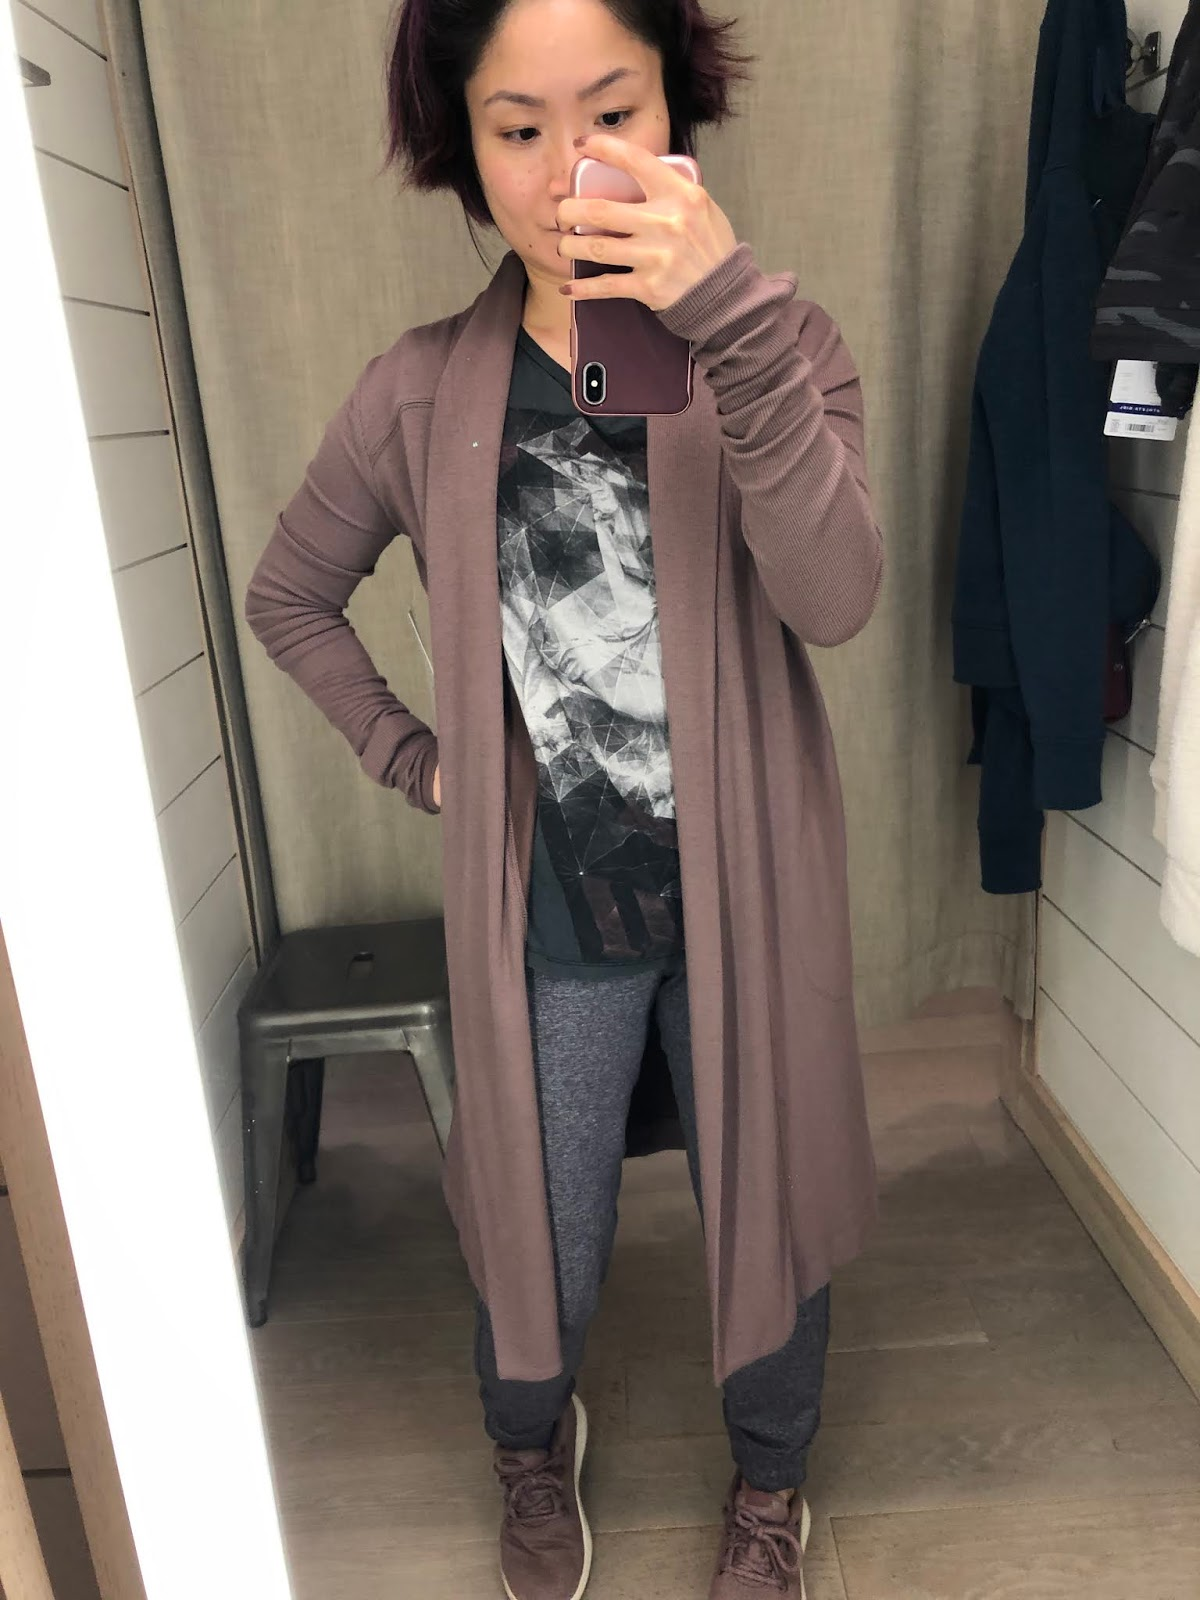 Petite Impact Fit Review Friday Athleta Store Try Ons Canopy Wrap In Nirvana Tugga Long Sherpa Jacket Takin It Easy Jogger